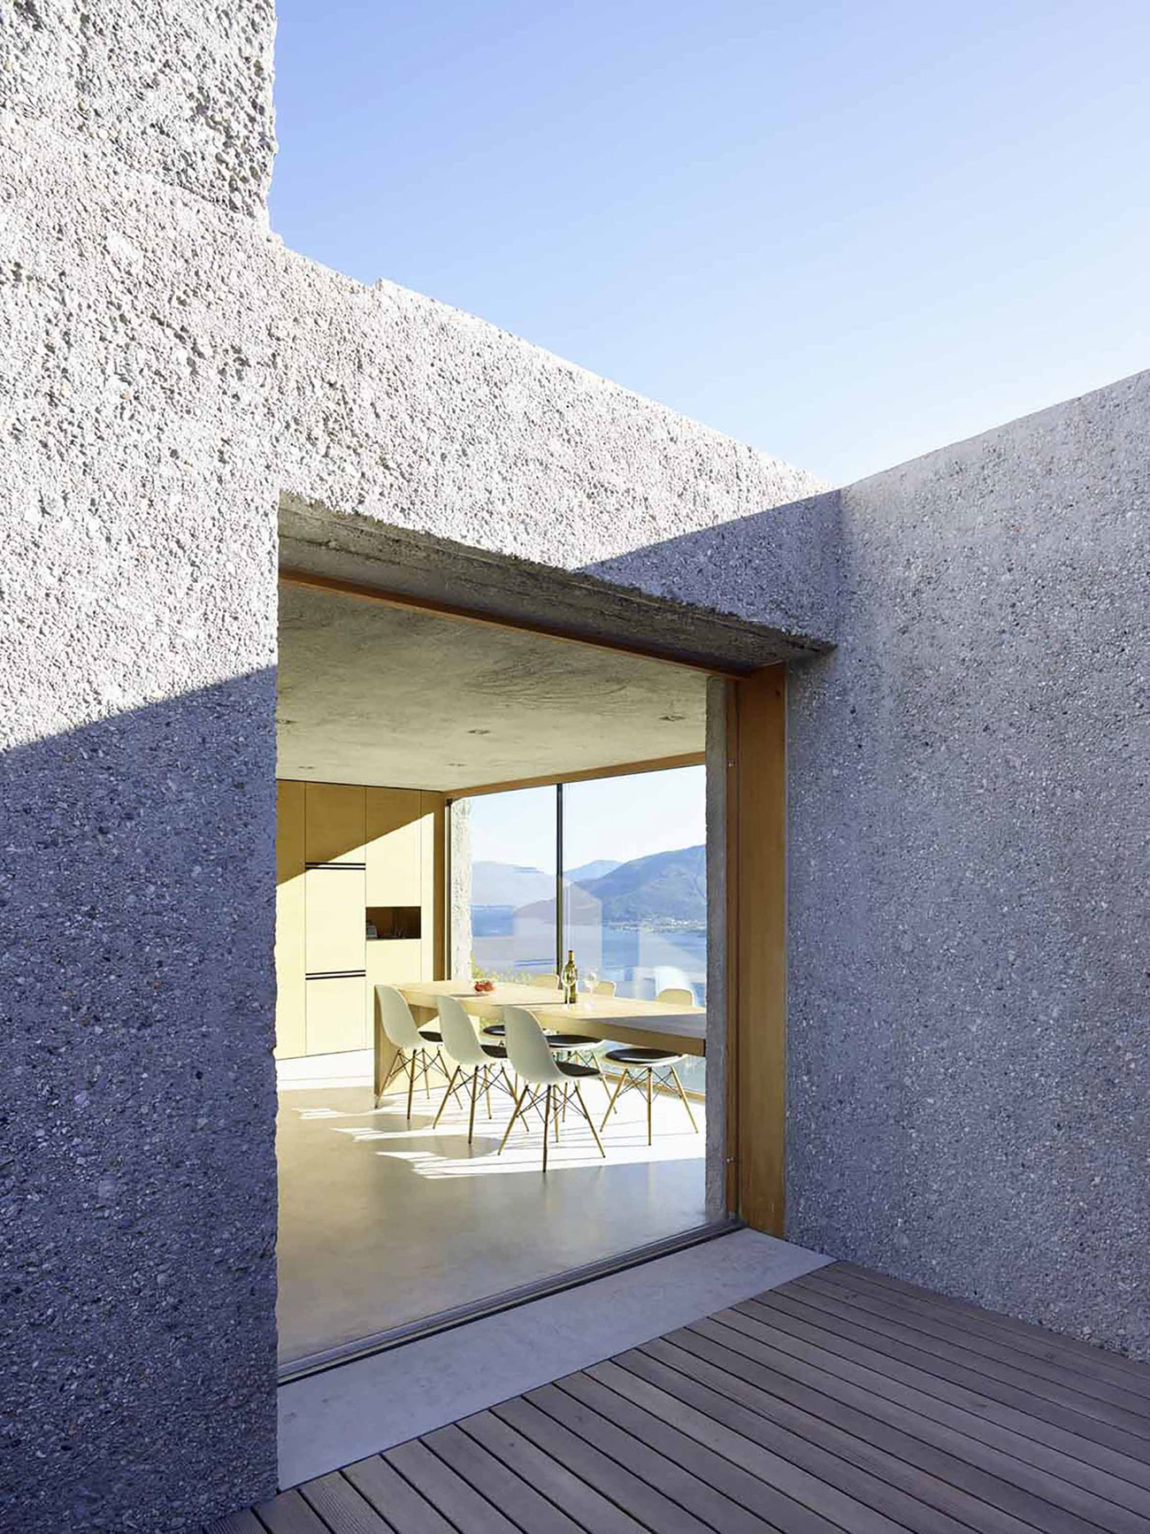 House in Brissago by Wespi de Meuron Romeo architects (6)